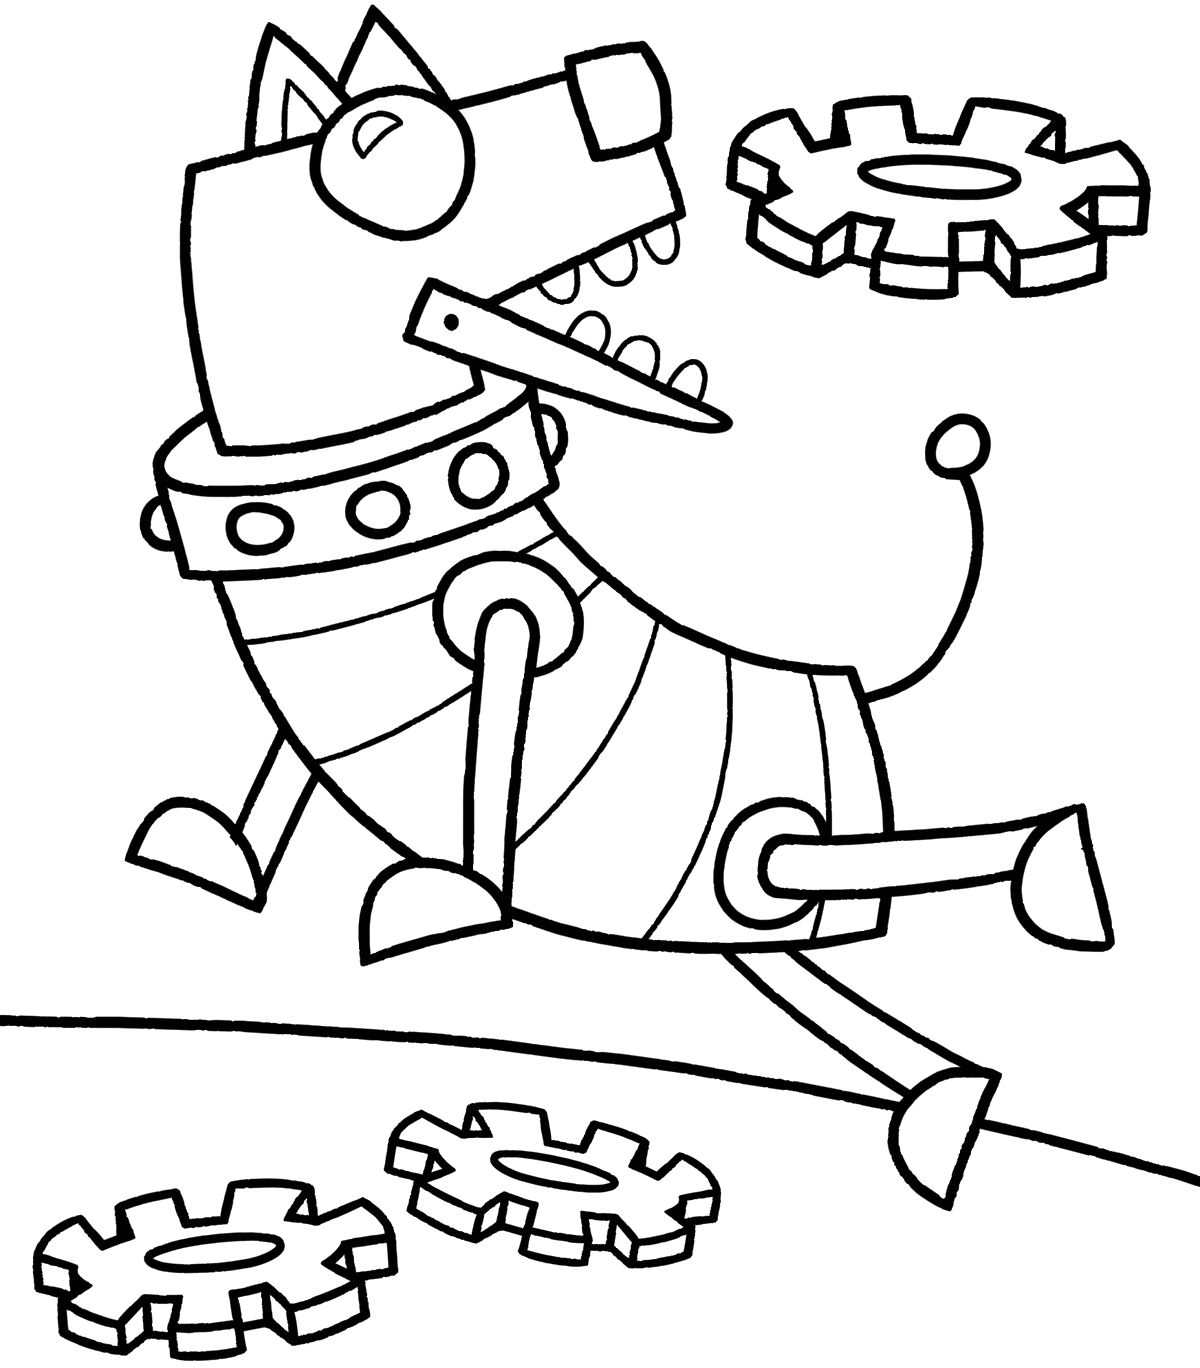 Robots Robot Dog Robots Coloring Pages Pinterest Robot And Craft